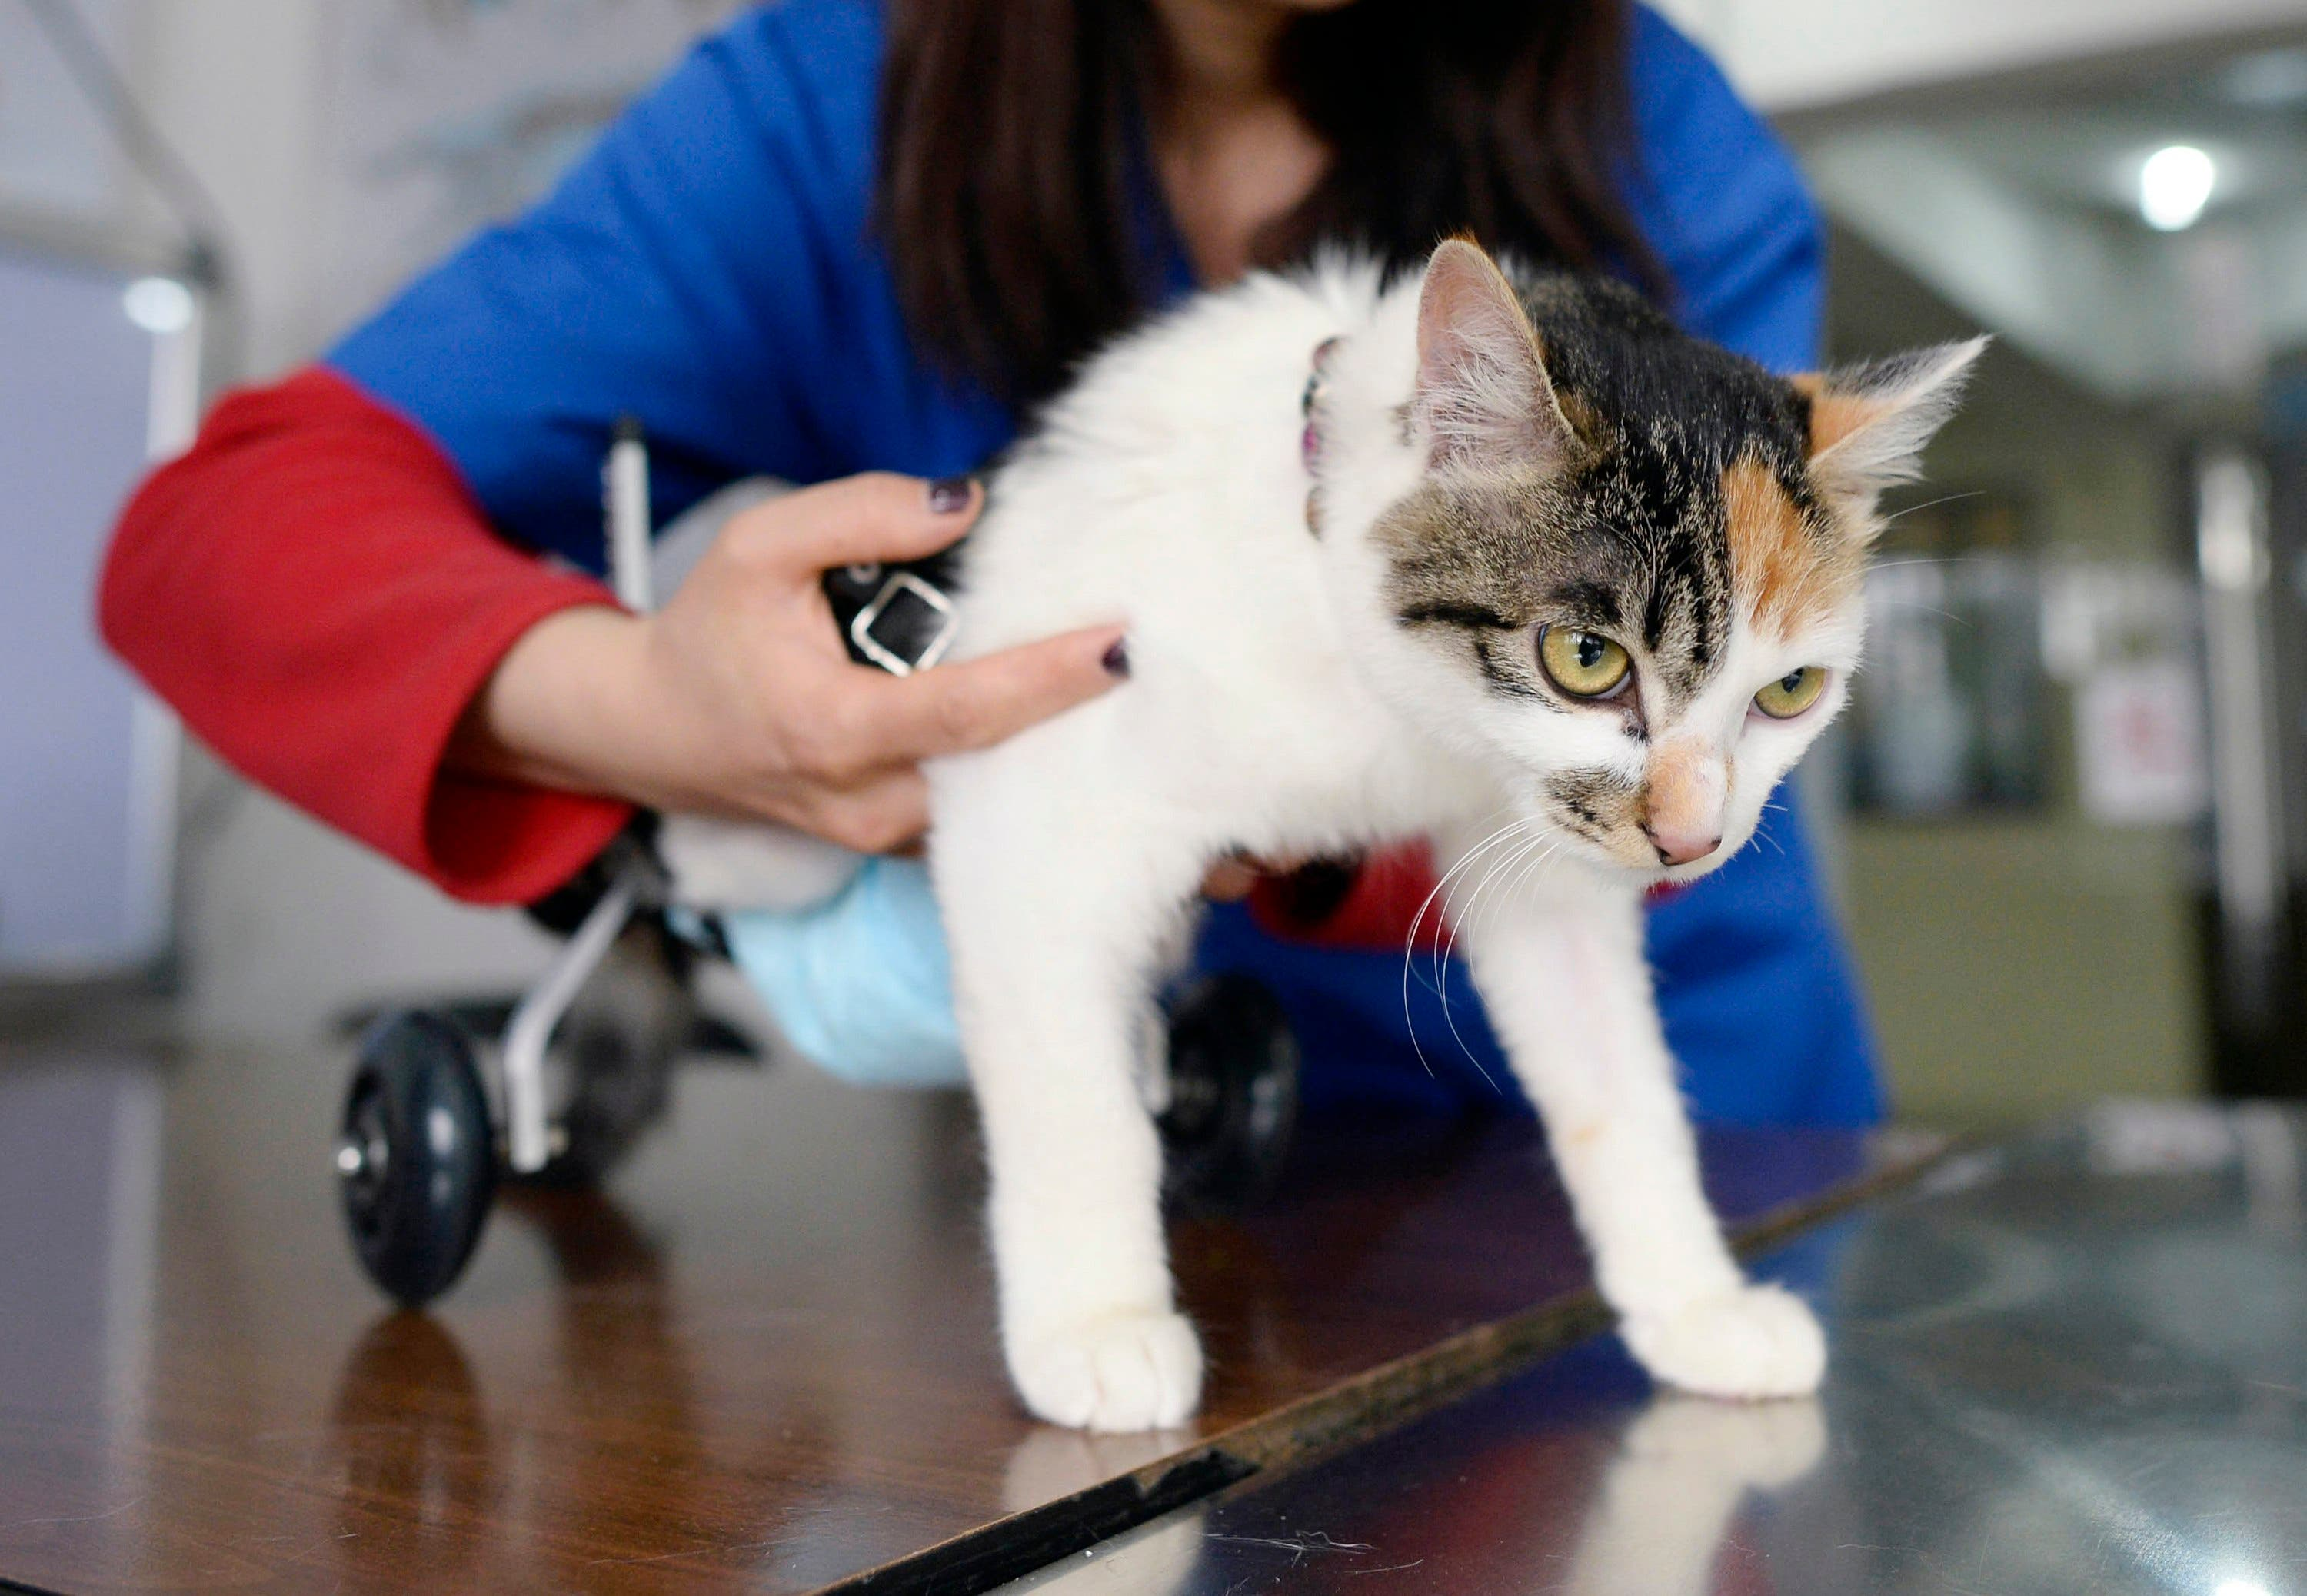 A veterinarian fits an 8-month-old cat in a prosthetic two-wheel device, at a veterinary hospital in Chongqing municipality, March 16, 2015. (Reuters)